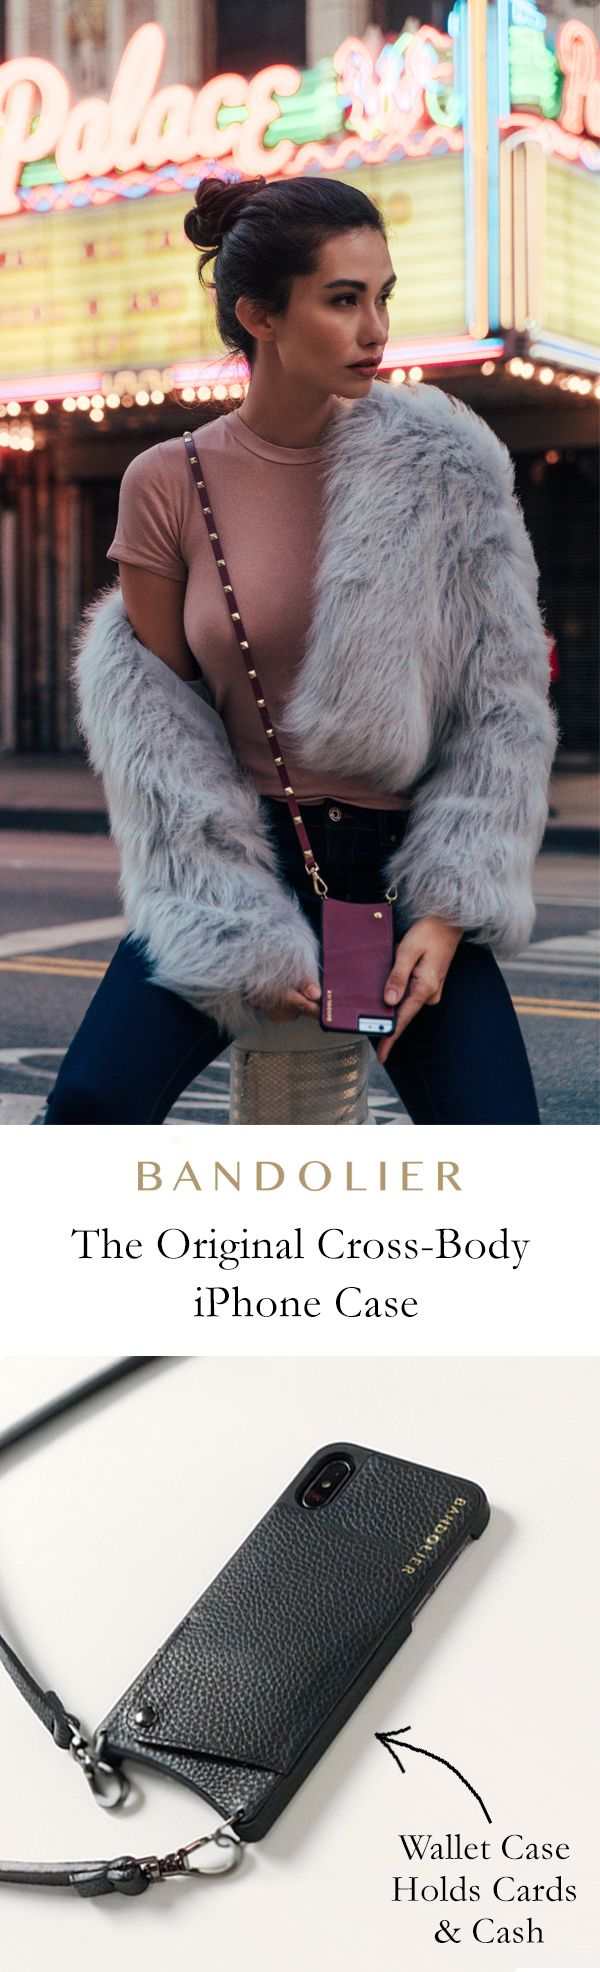 The original cross-body, luxury iPhone case with hidden pockets for credit cards, ID & cash. Available for iPhone X, 8/8+, 7/7+, 6s/6s+, 6/6+ Shop now!